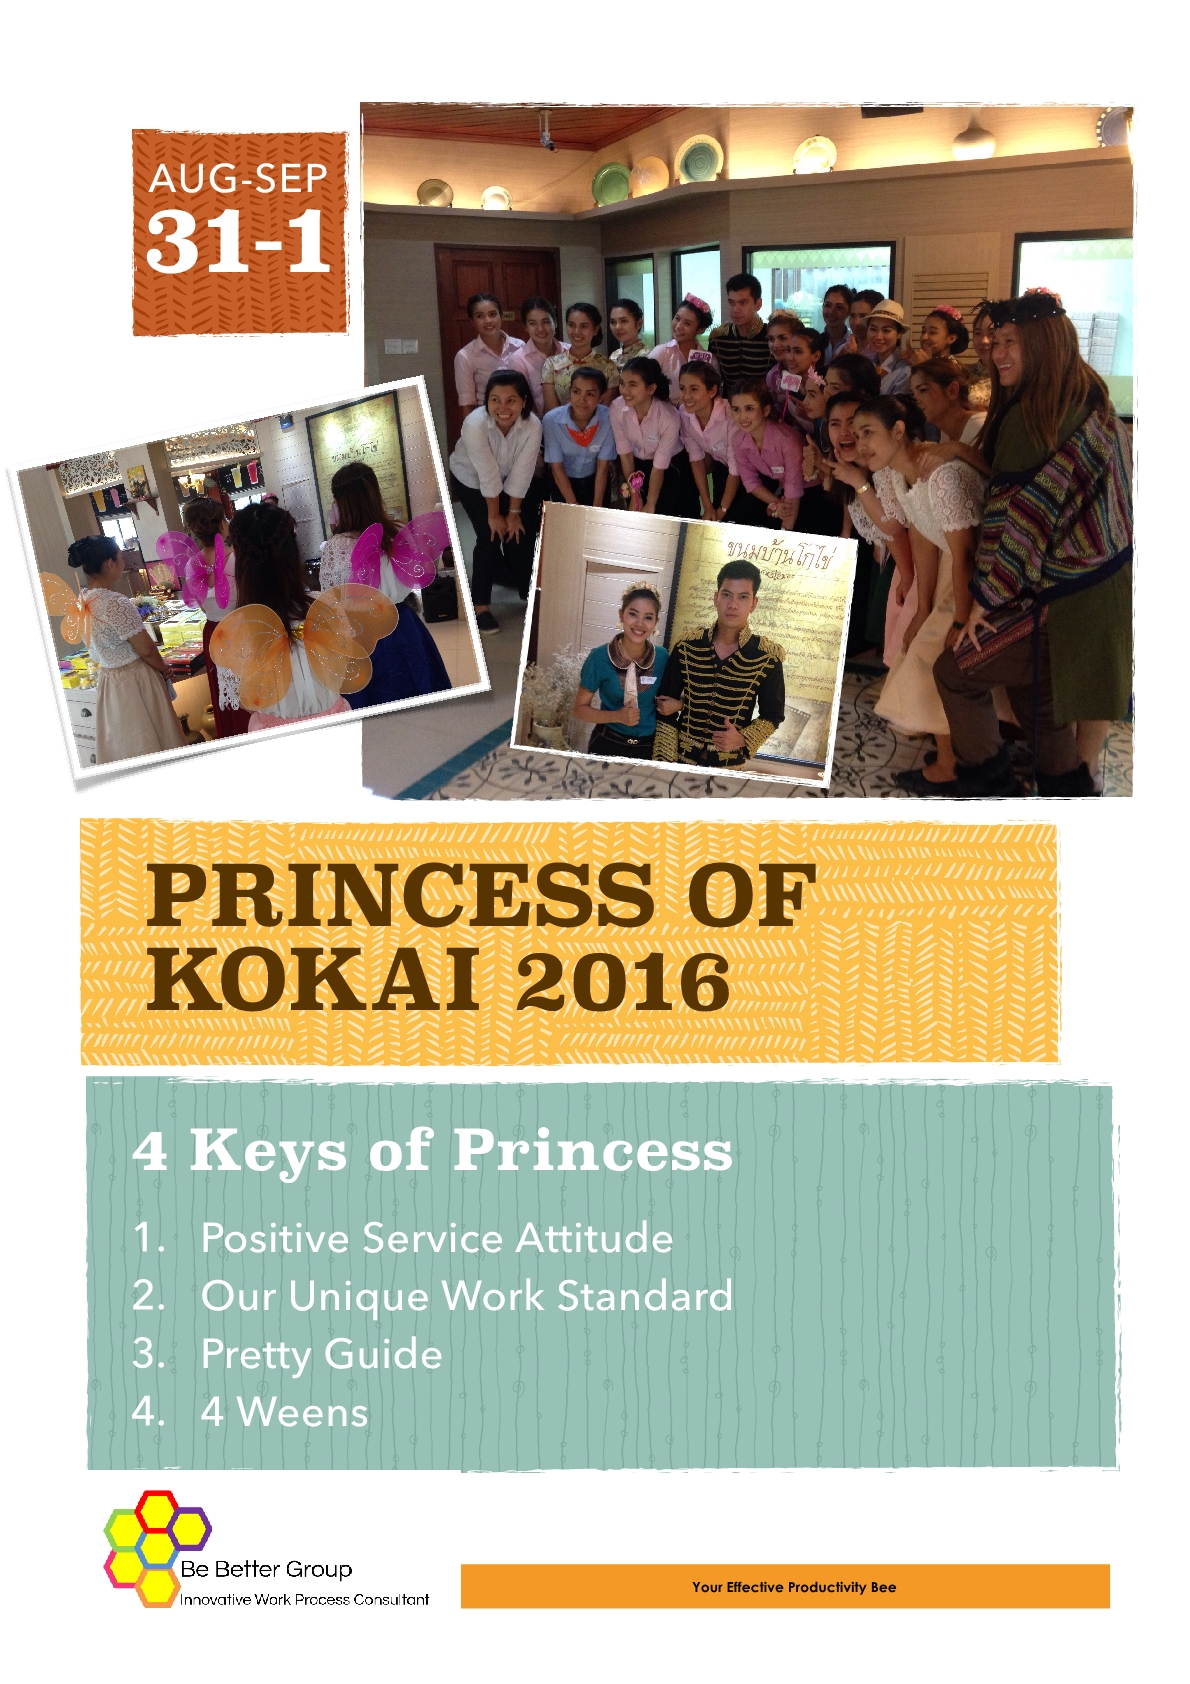 Princess of KoKai 2016